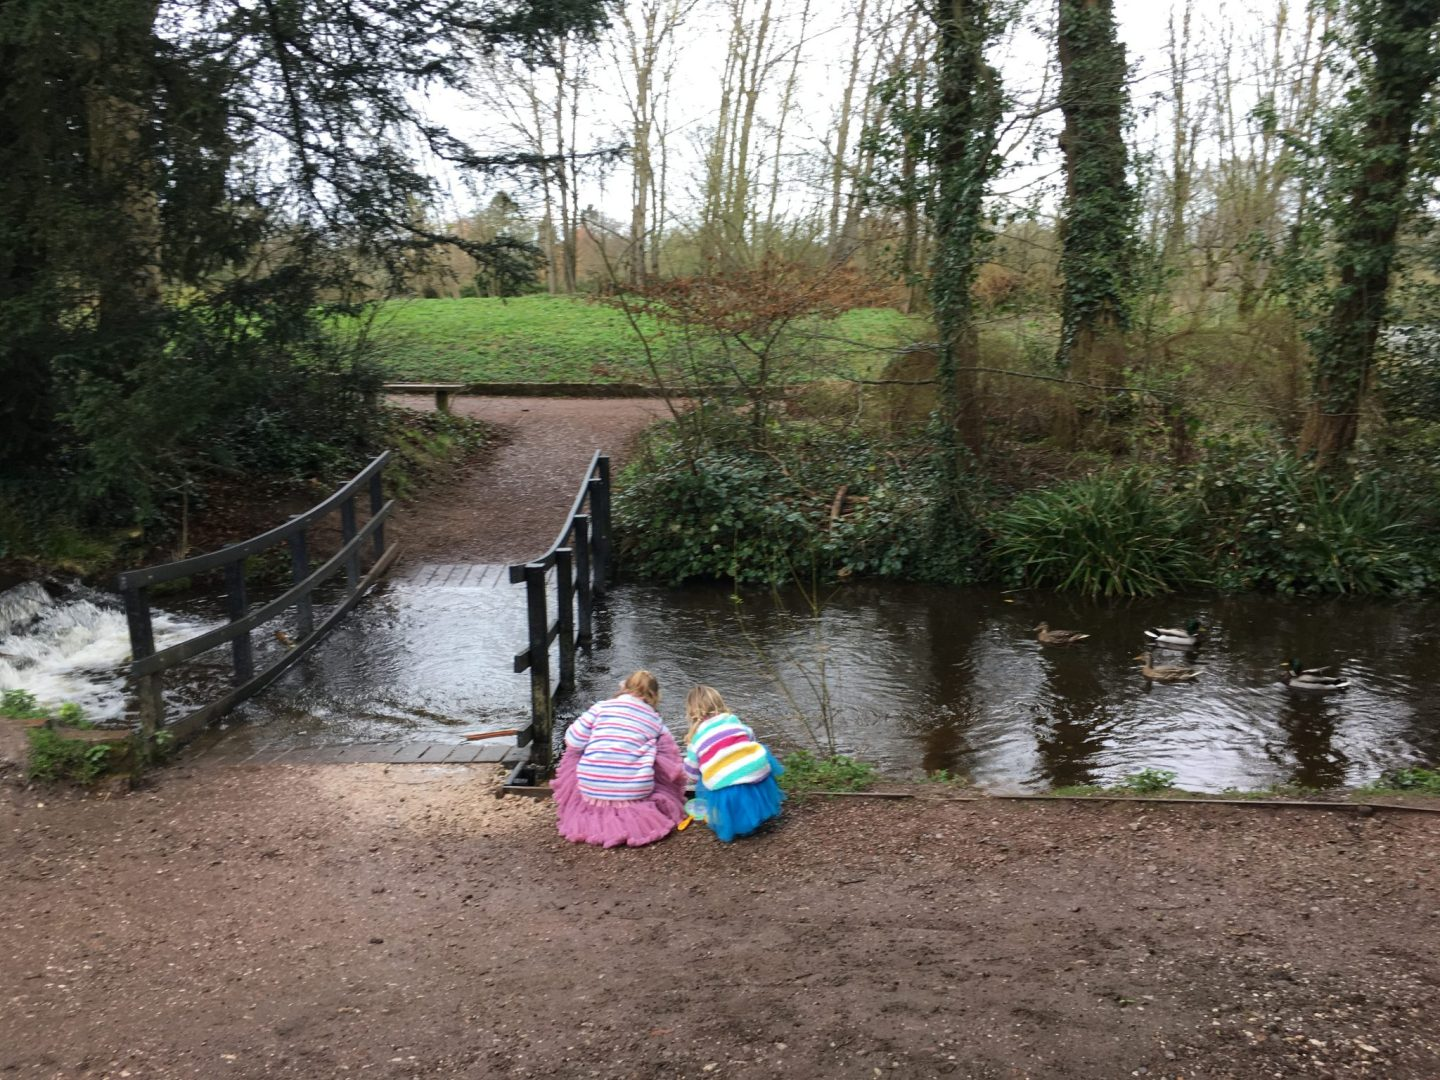 The Wolseley centre, Staffordshire offers a free day out with kids